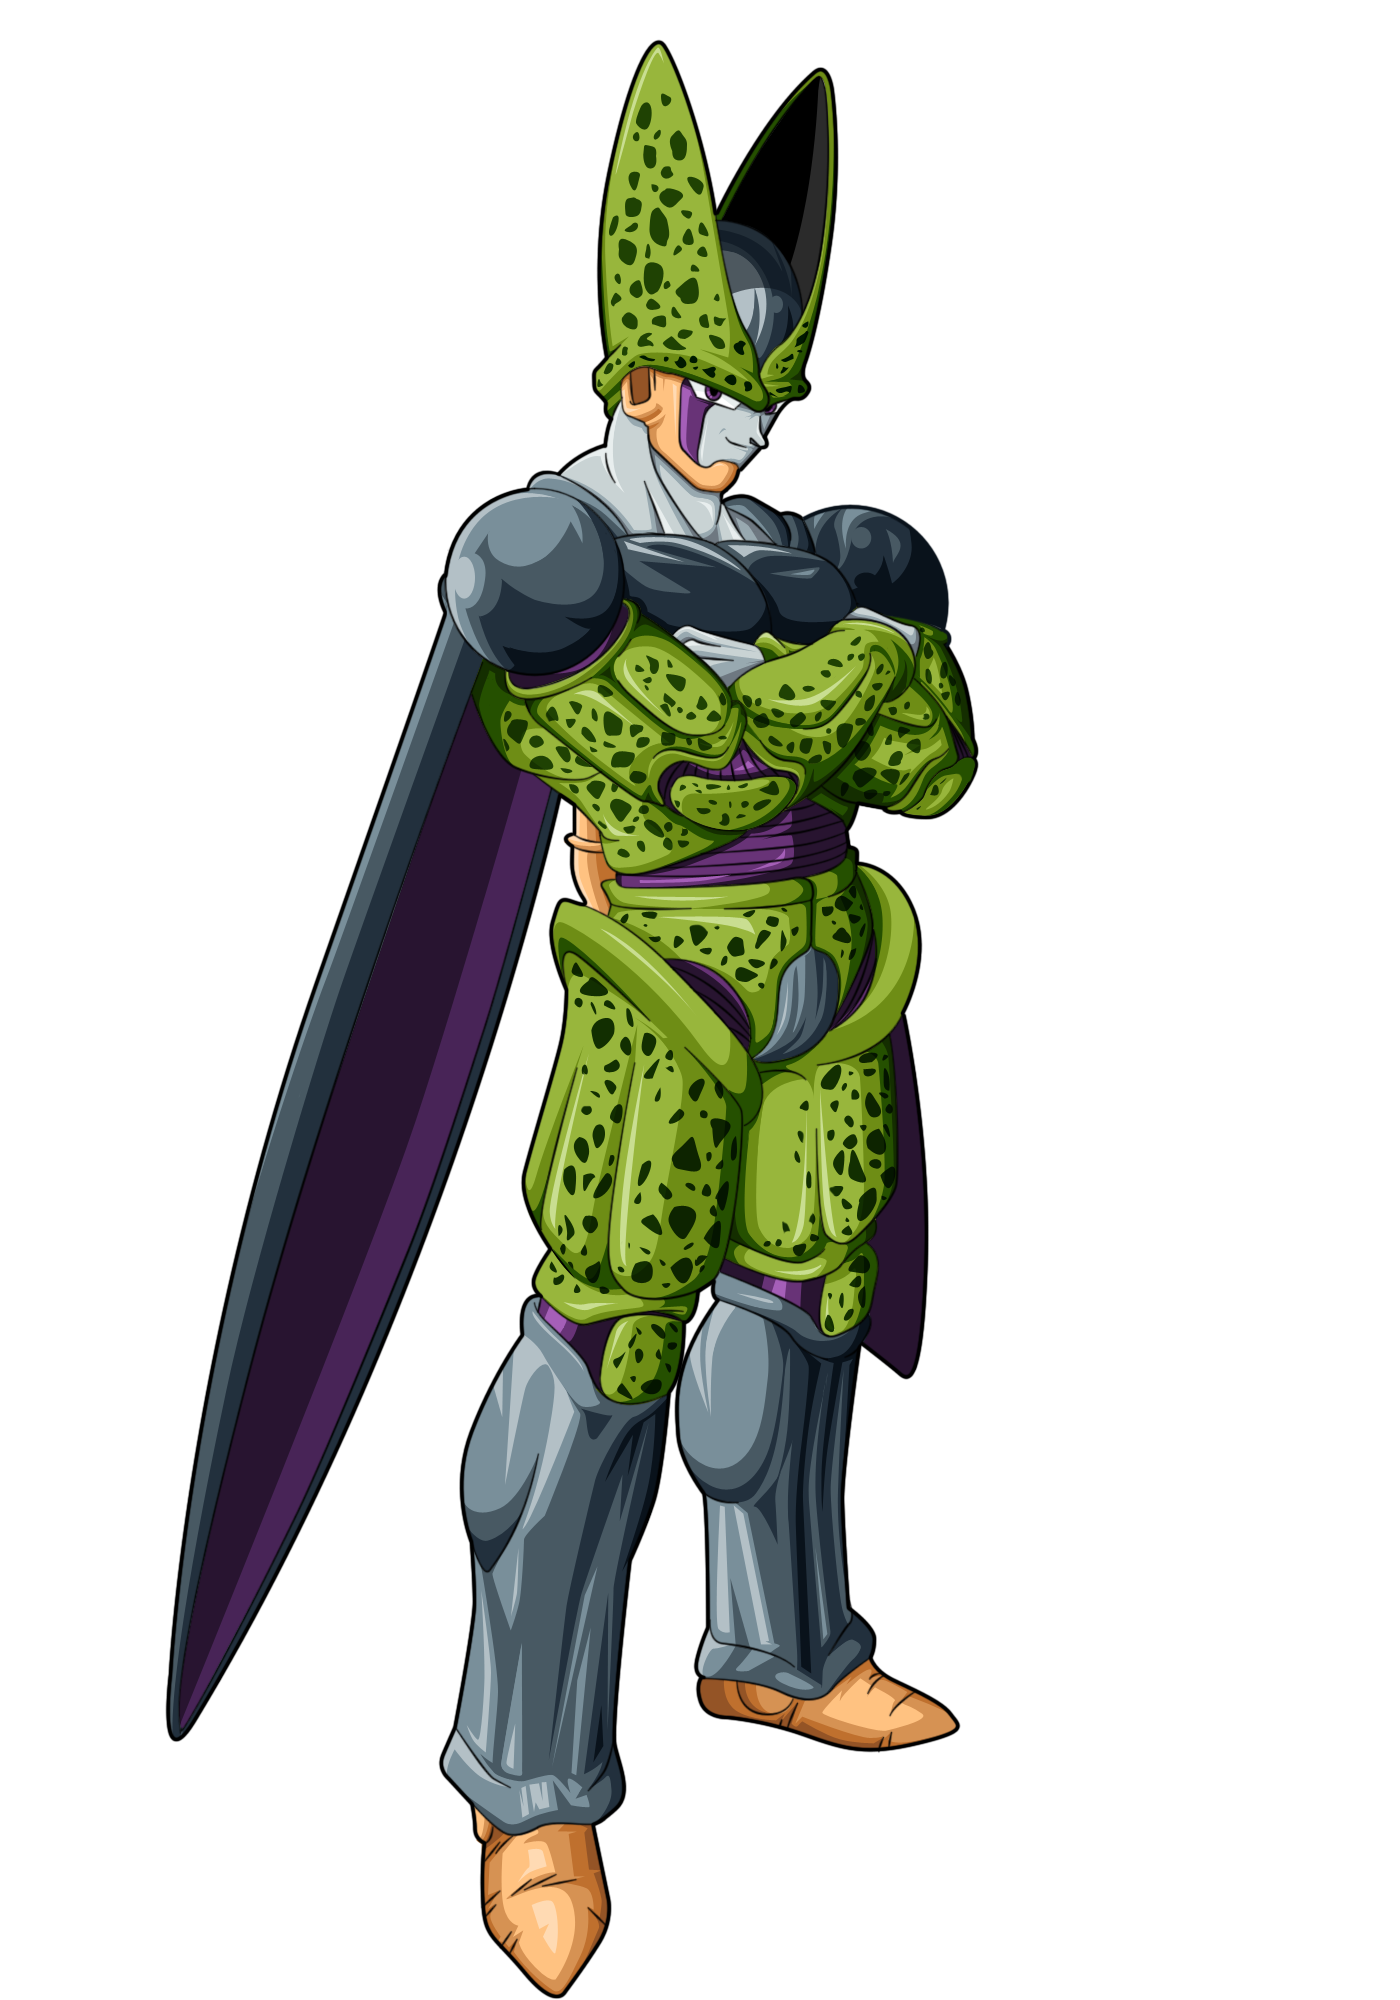 Perfect cell by noname37 on deviantart deviantart and or tumblr animes manga drag o boll - Dragon ball z baby cell ...